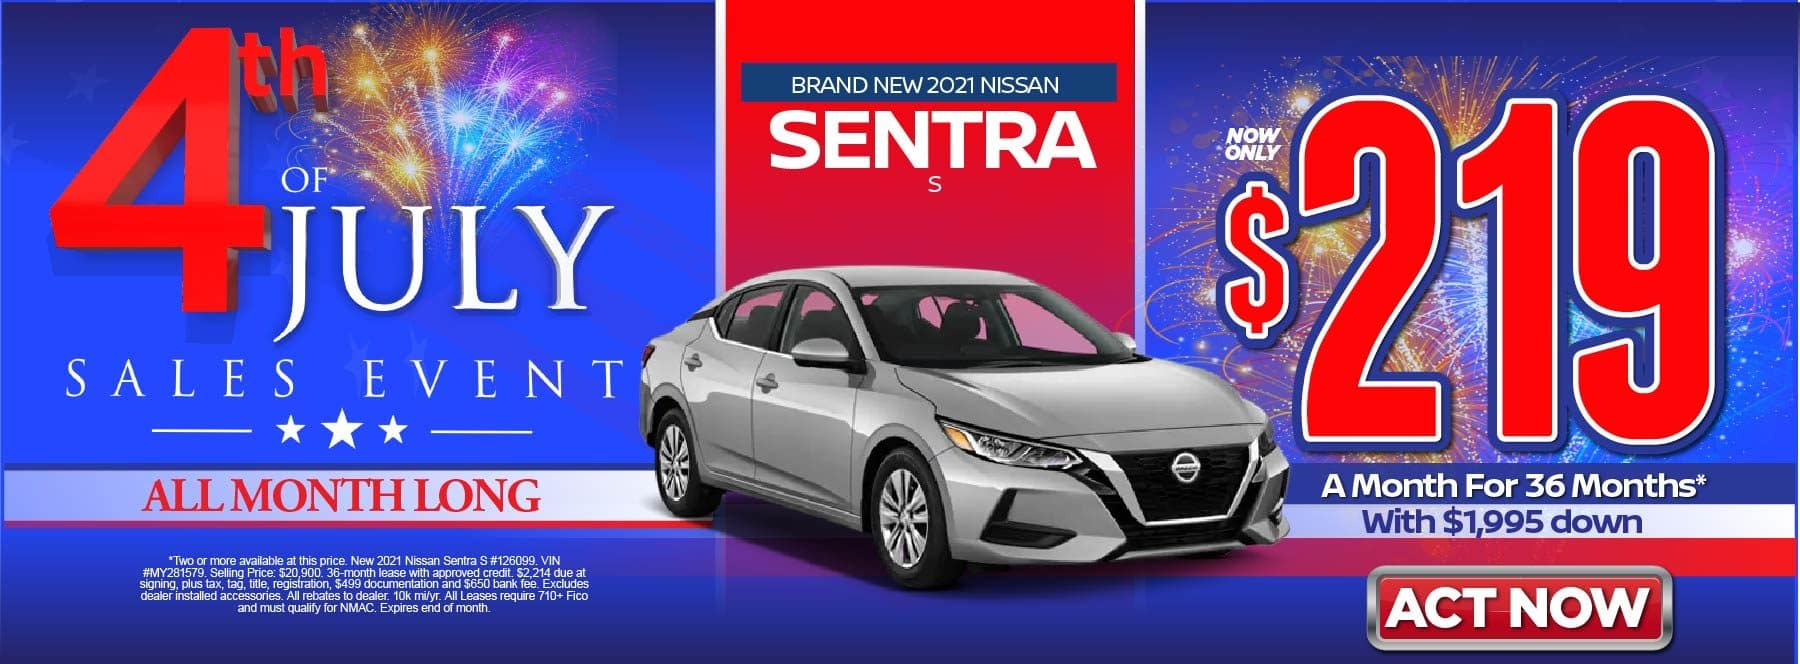 New 2021 Nissan Sentra SV – Lease for $219/mo for 36 months with $1,995 Down* Act now.